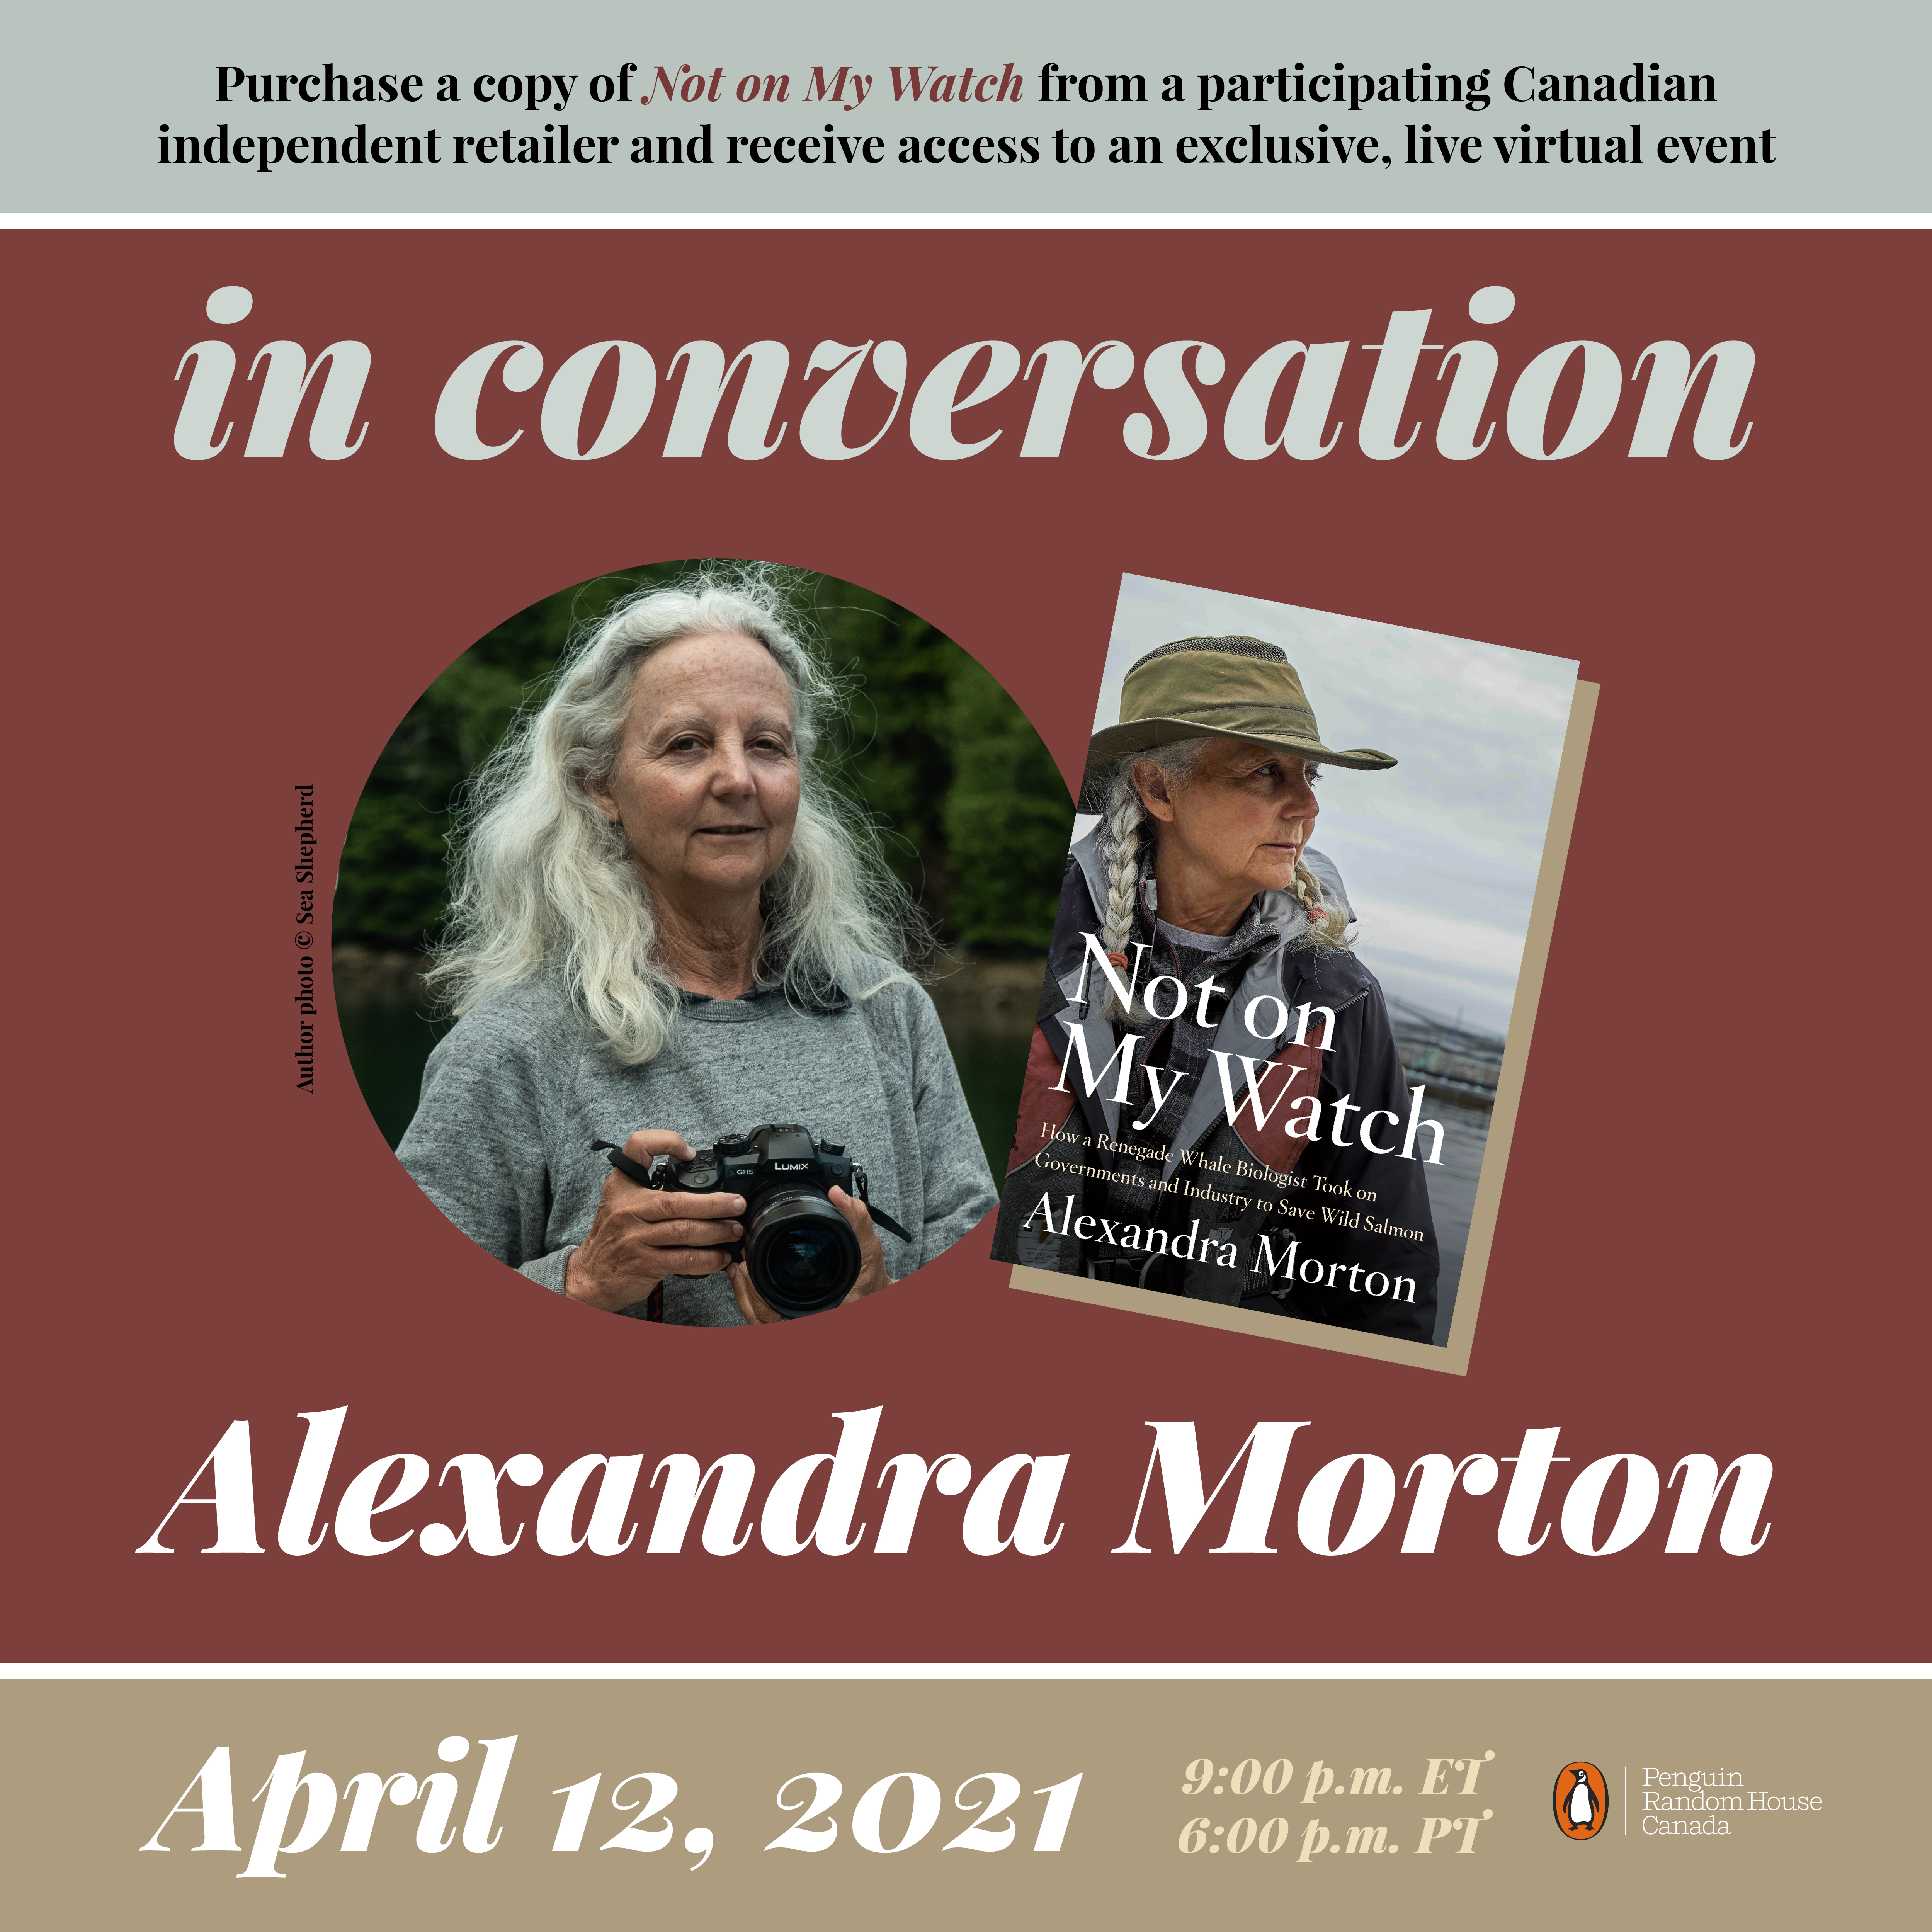 Alexandra Morton Event